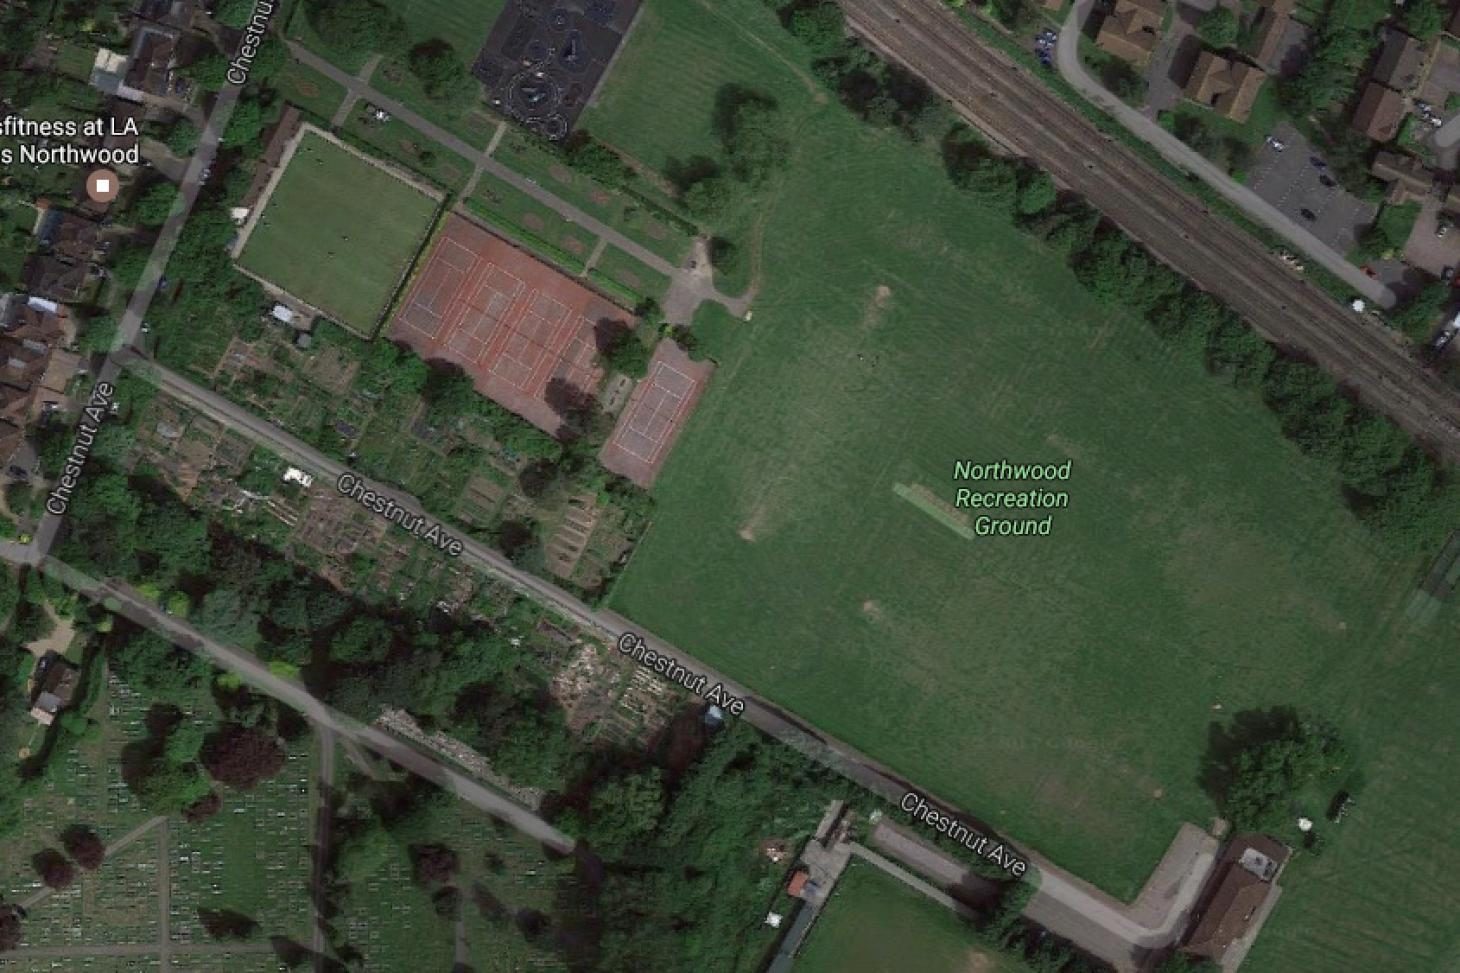 Northwood Recreation Ground 11 a side | Grass football pitch